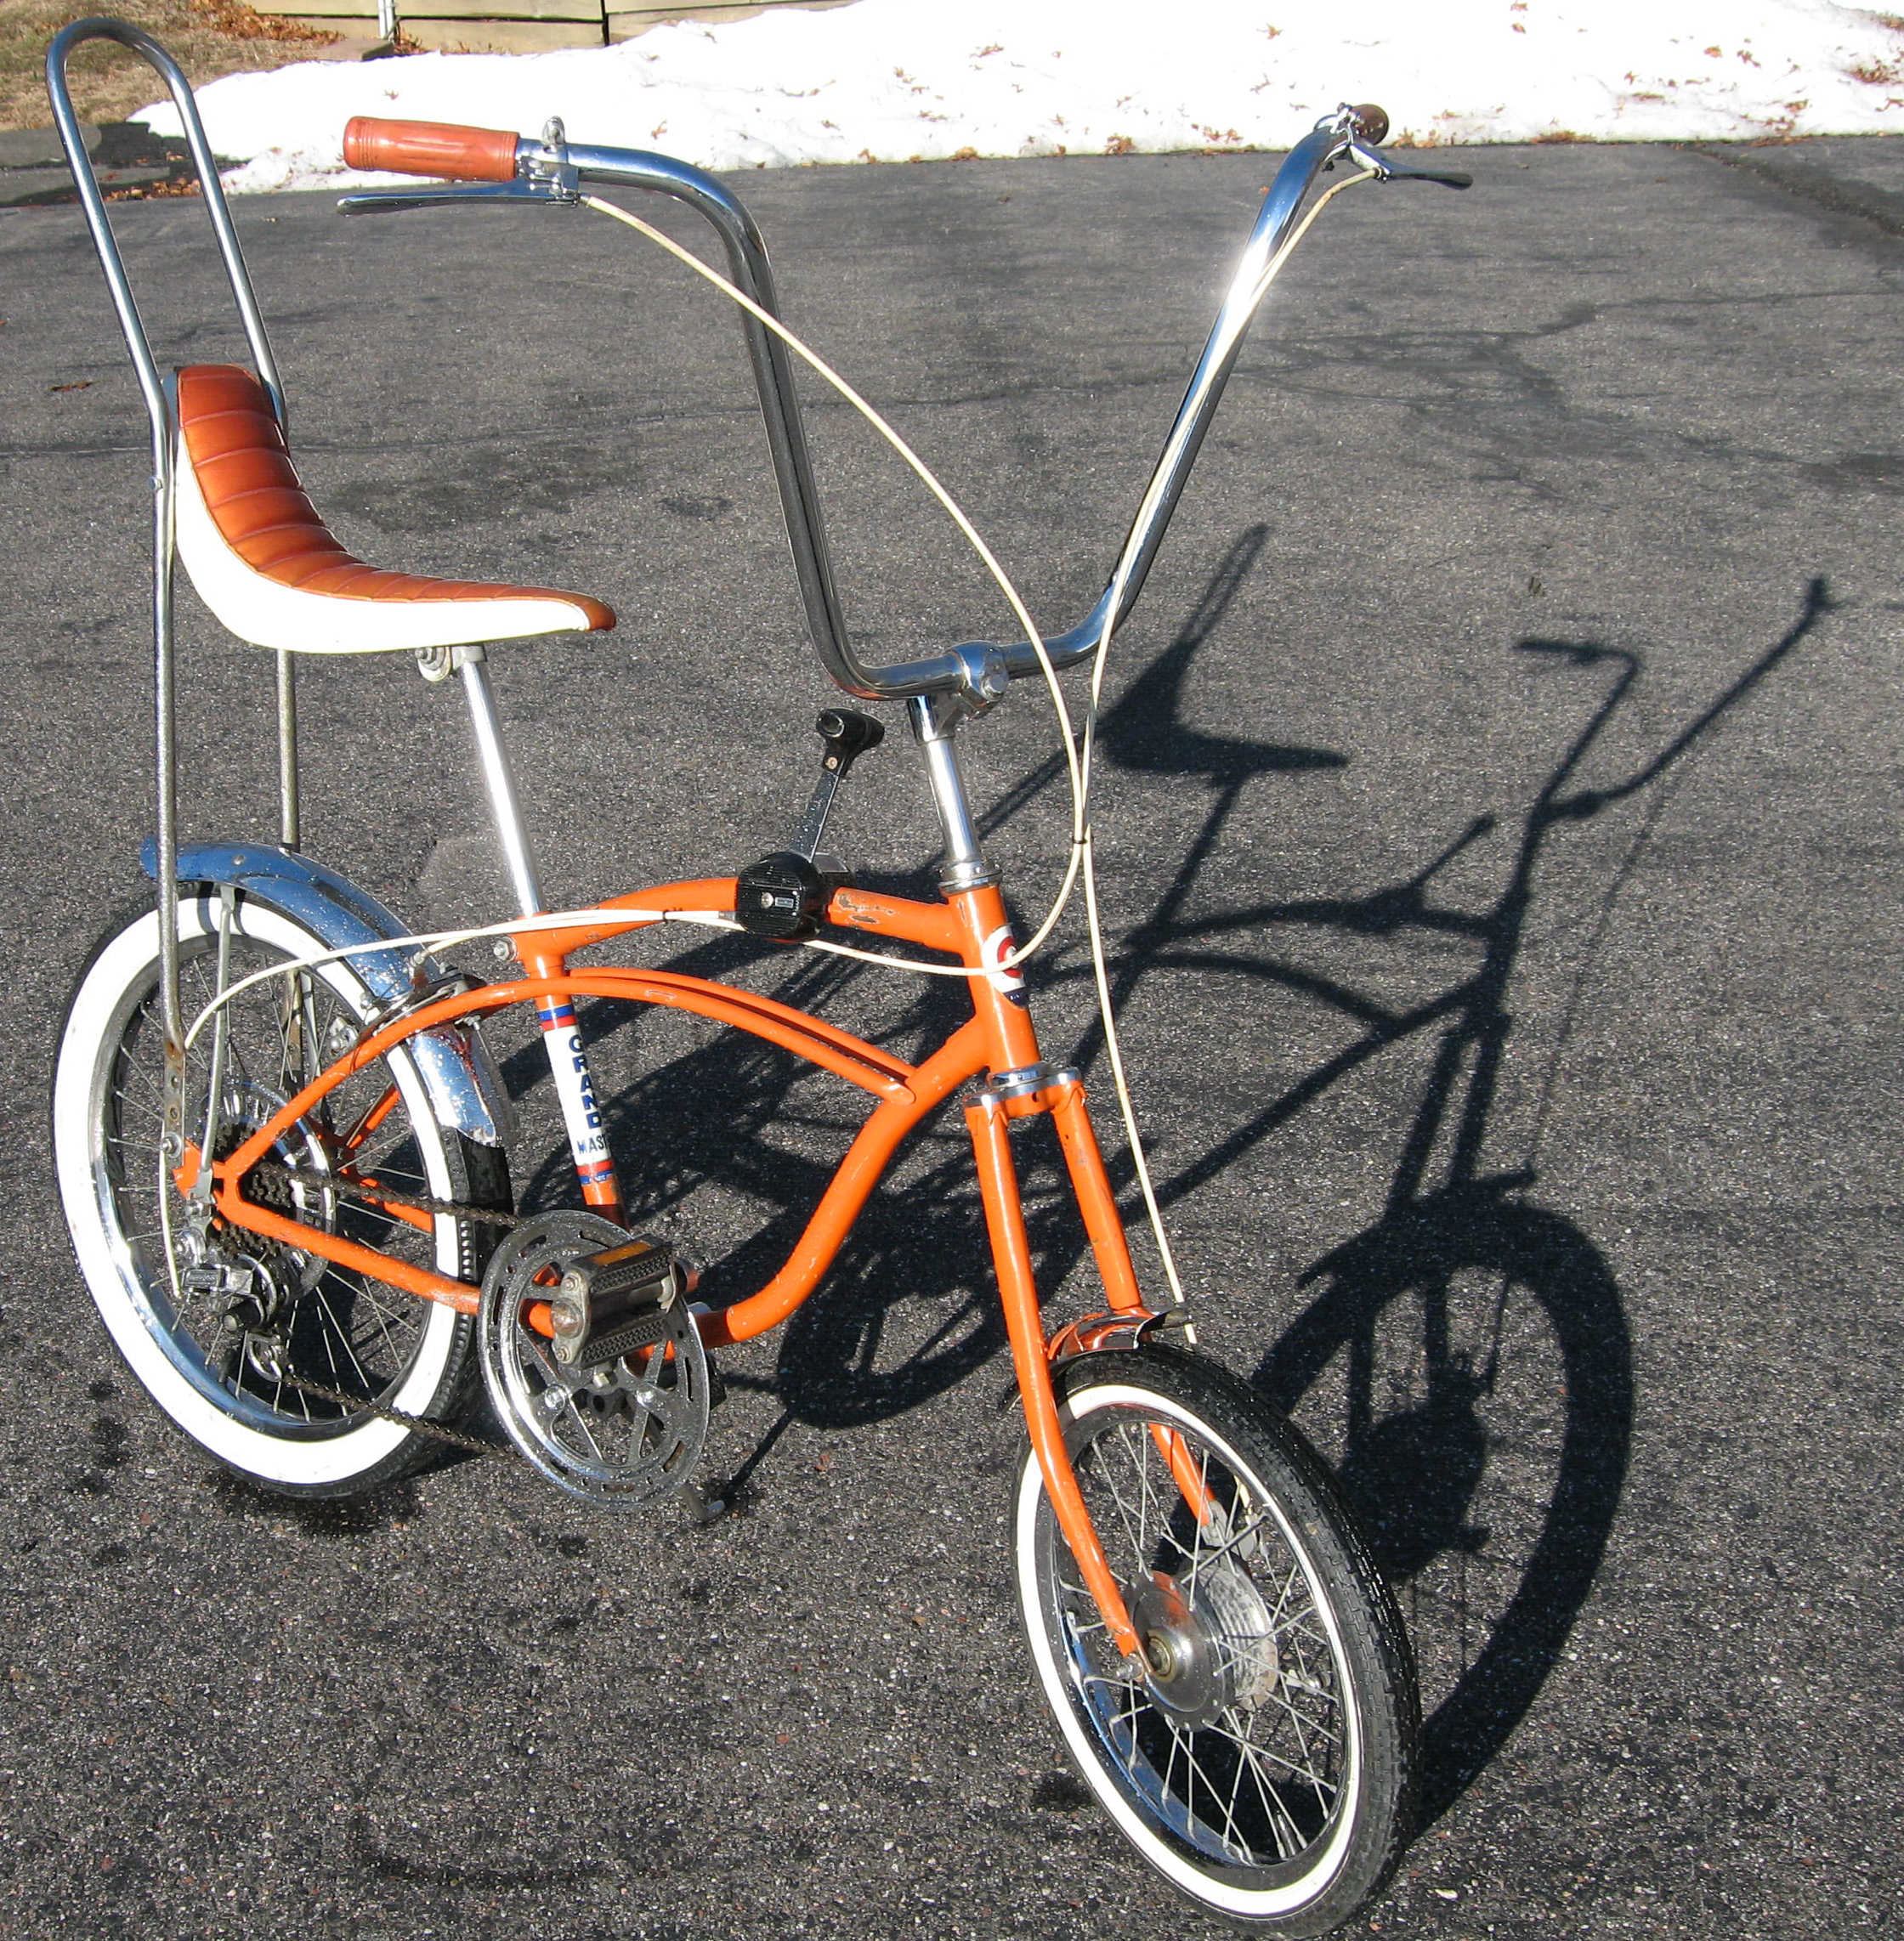 is a Japanese Muscle Bike